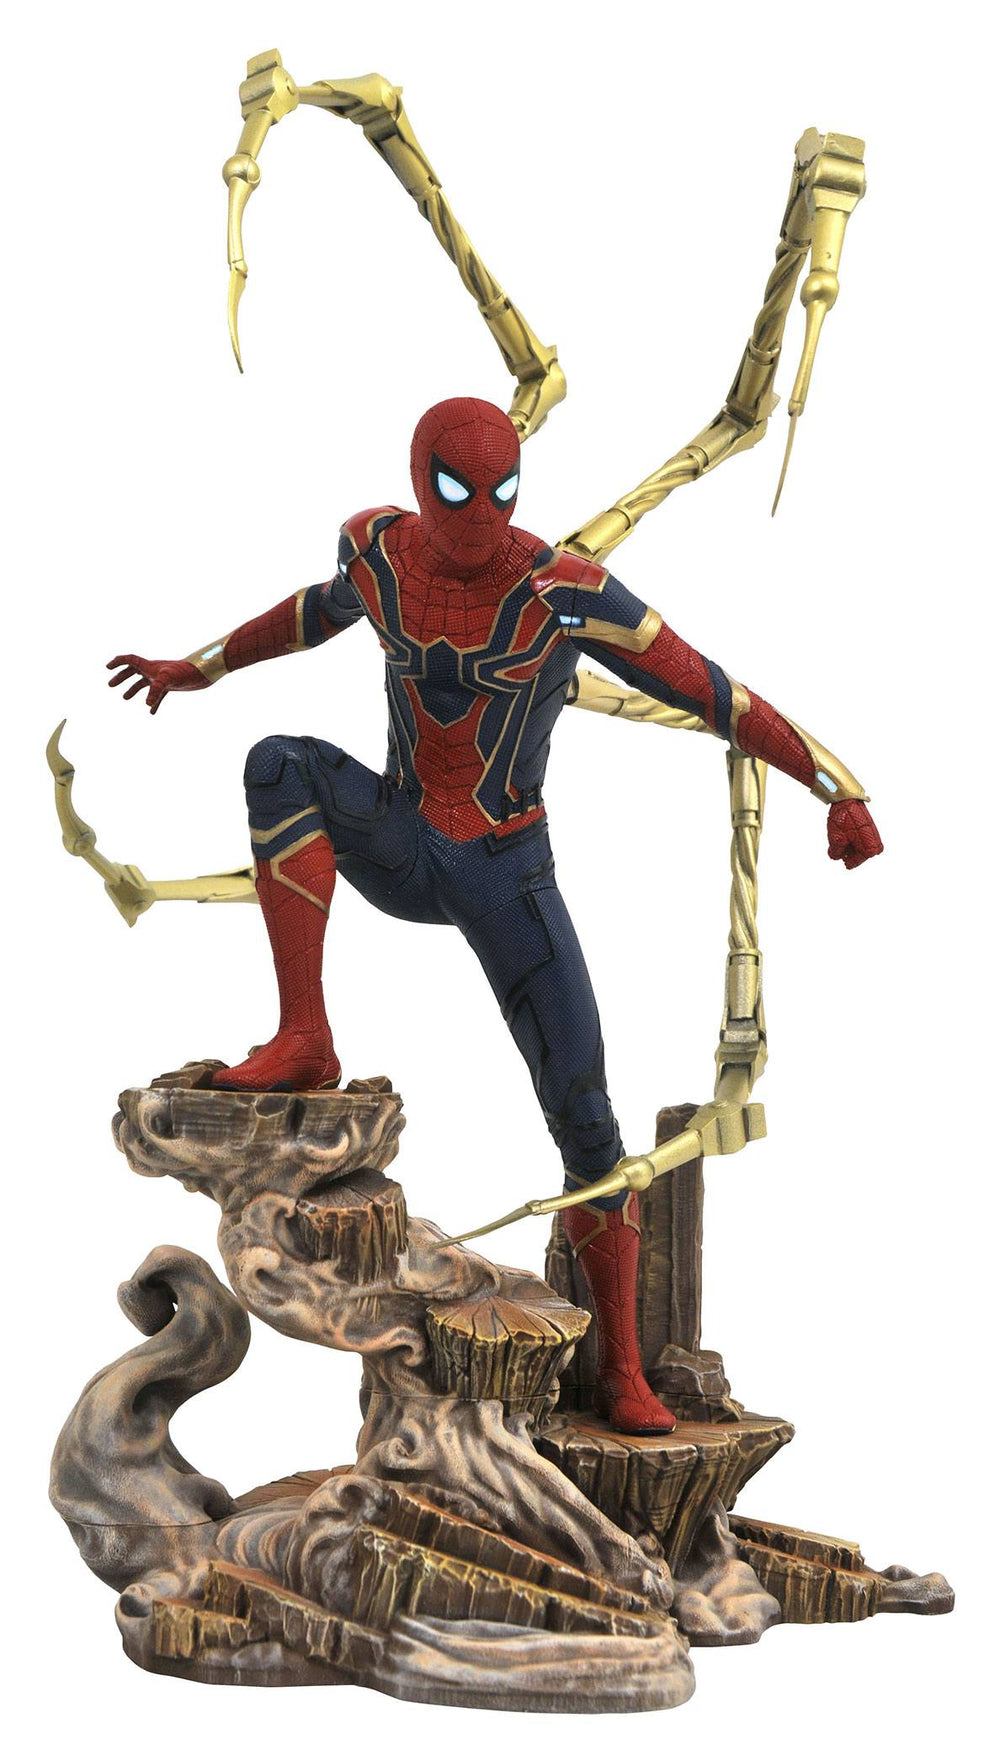 Diamond Select Toys Marvel Movie Gallery Avengers: Infinity War Iron Spider-Man PVC Statue